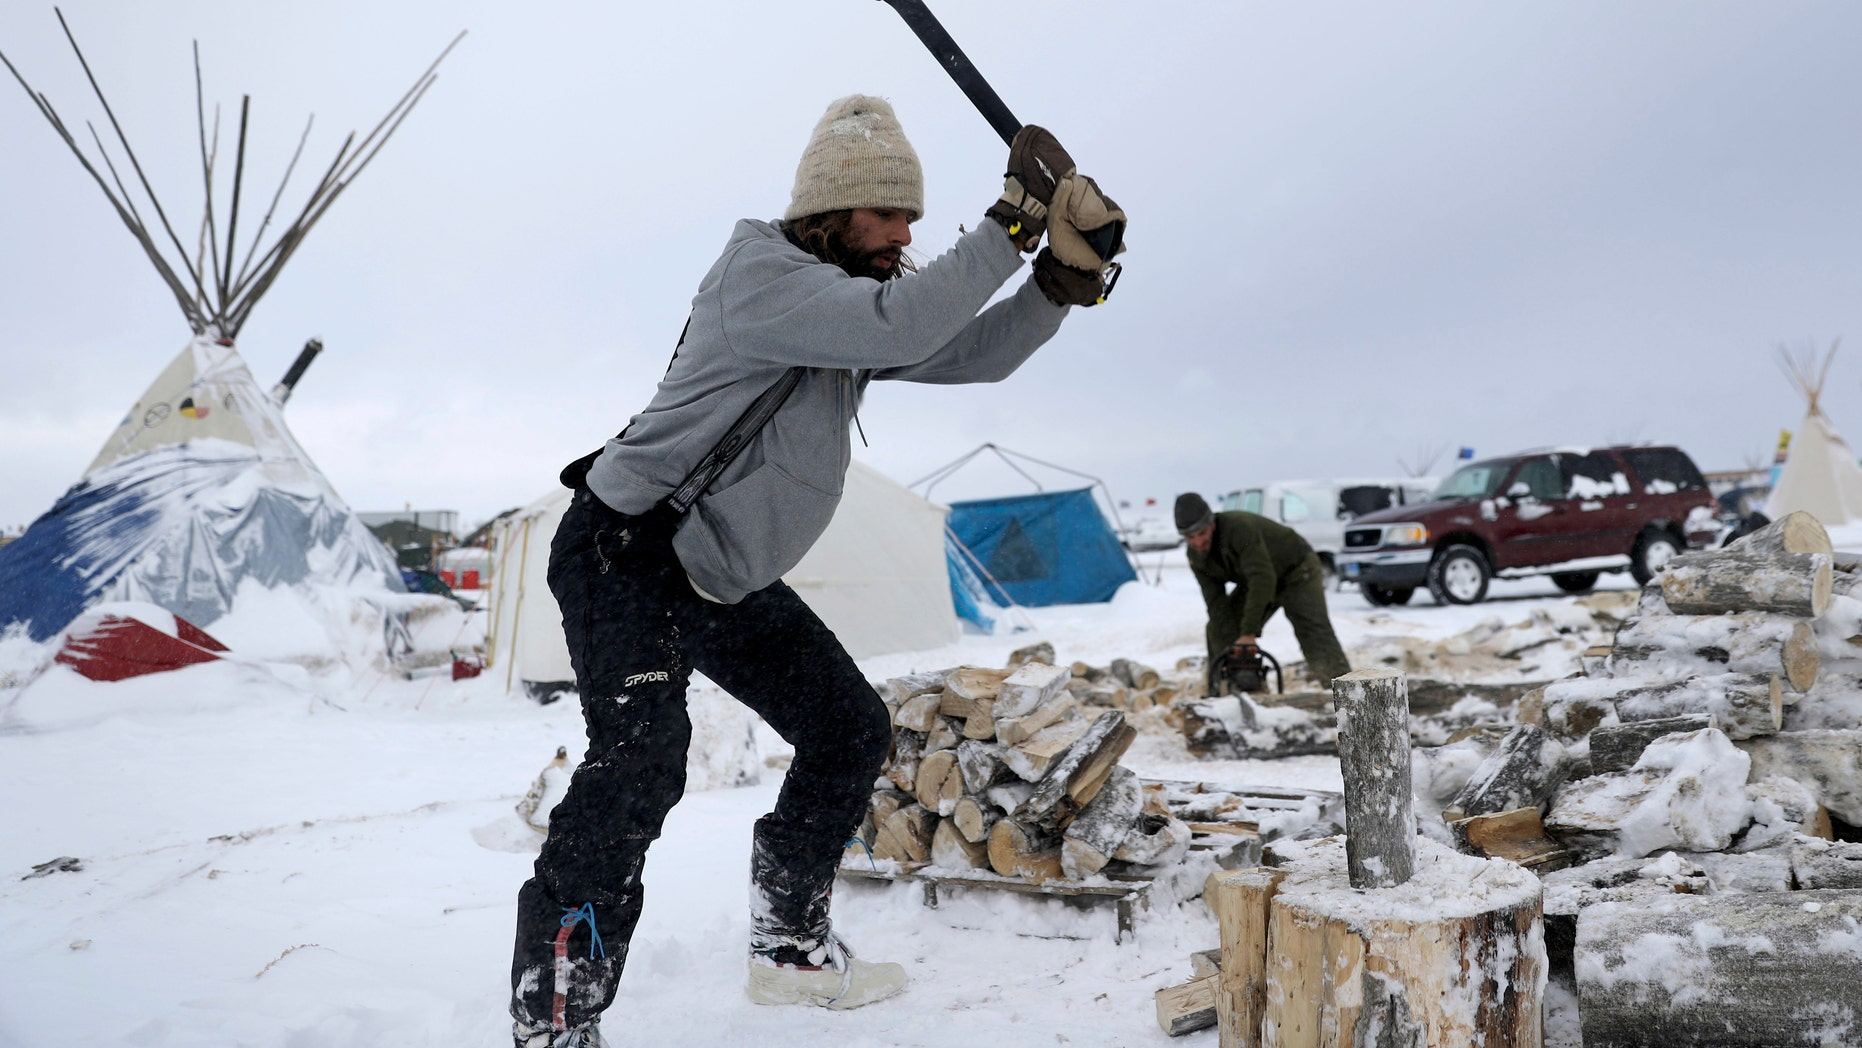 The Oceti Sakowin camp where people have gathered to protest the Dakota Access pipeline is seen near Cannon Ball, N.D.